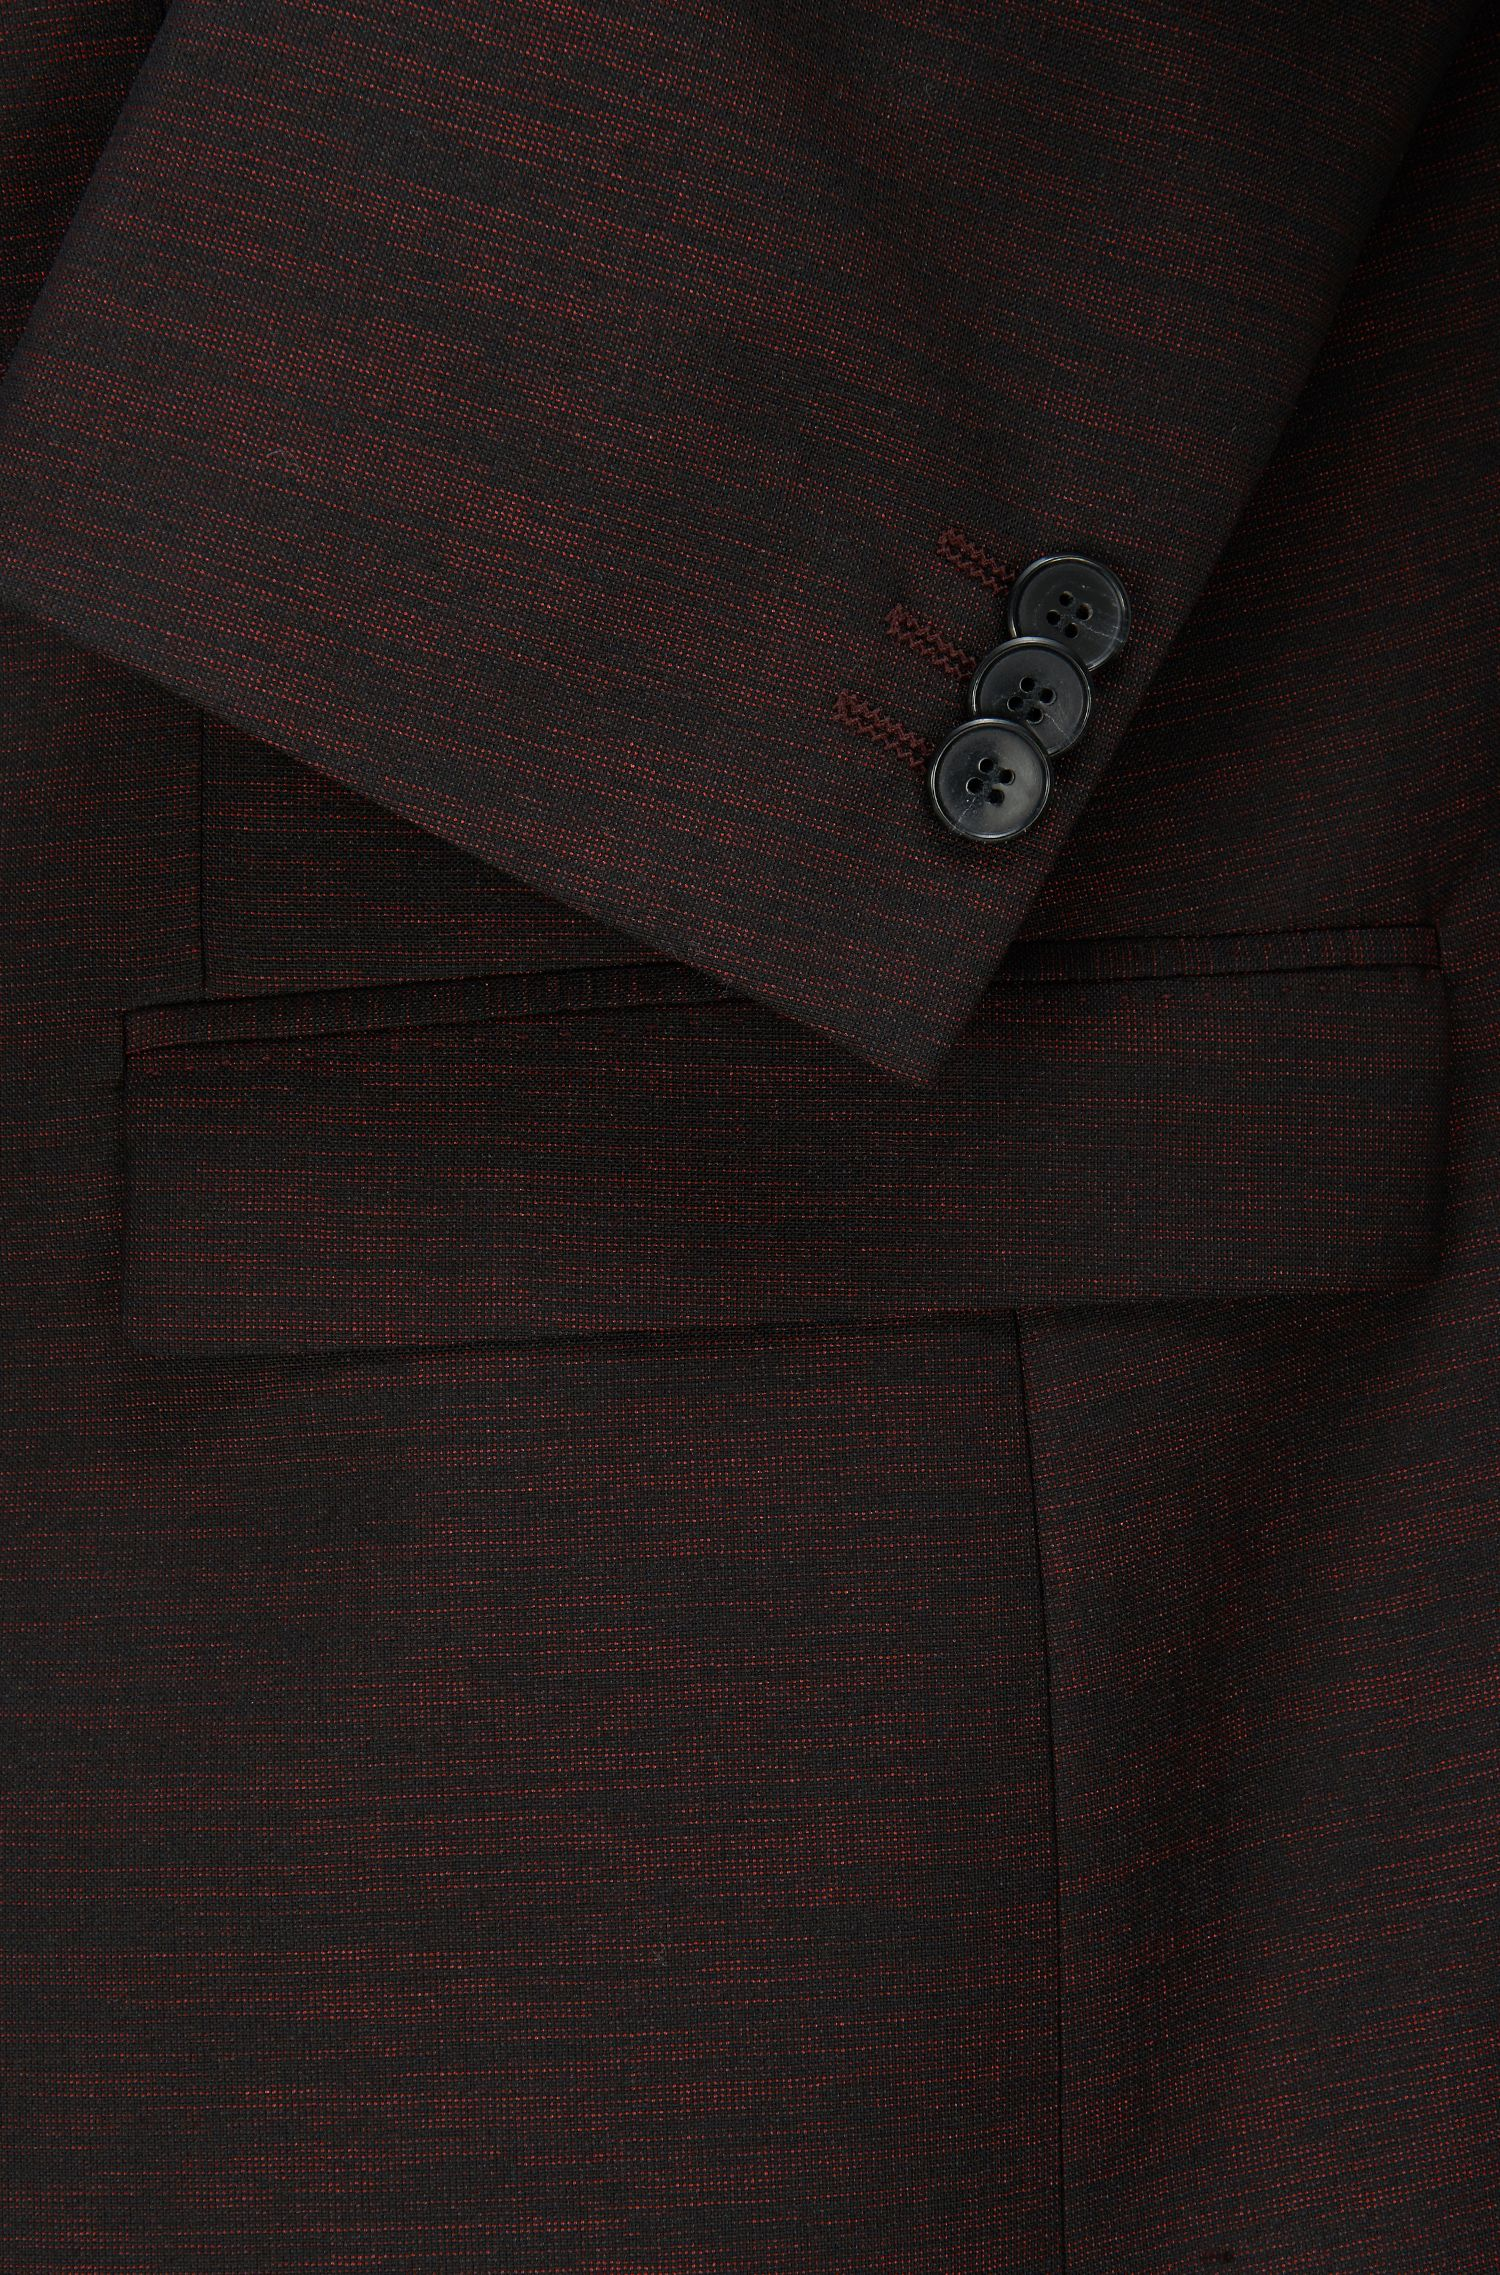 Virgin Wool Blend Suit, Slim Fit | Arti/Hesten, Dark Red